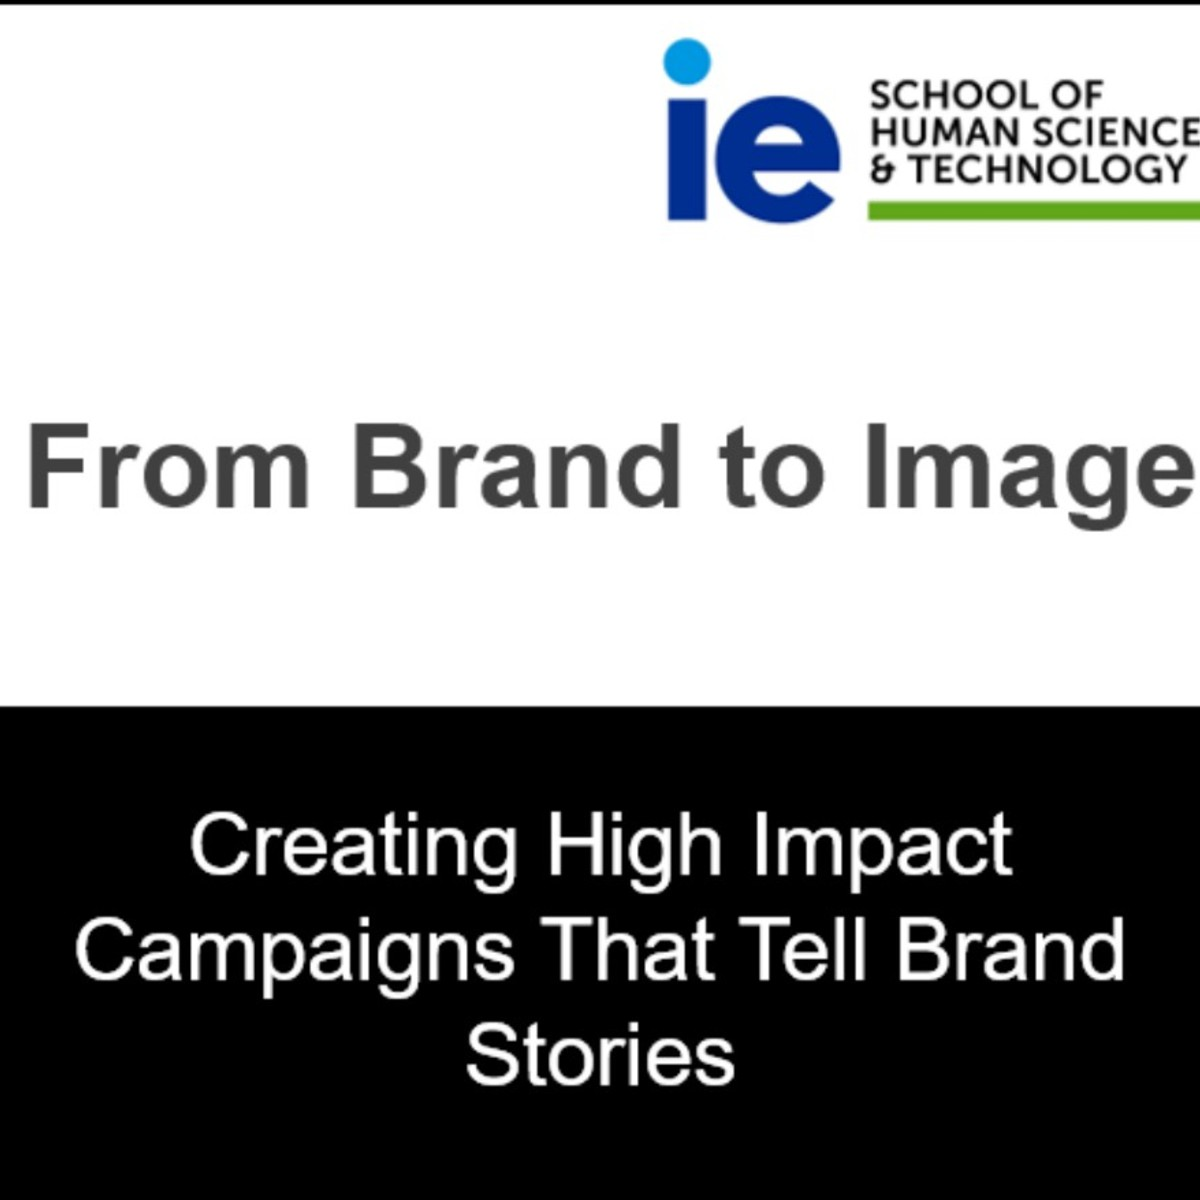 From Brand to Image: Creating High Impact Campaigns That Tell Brand Stories course image